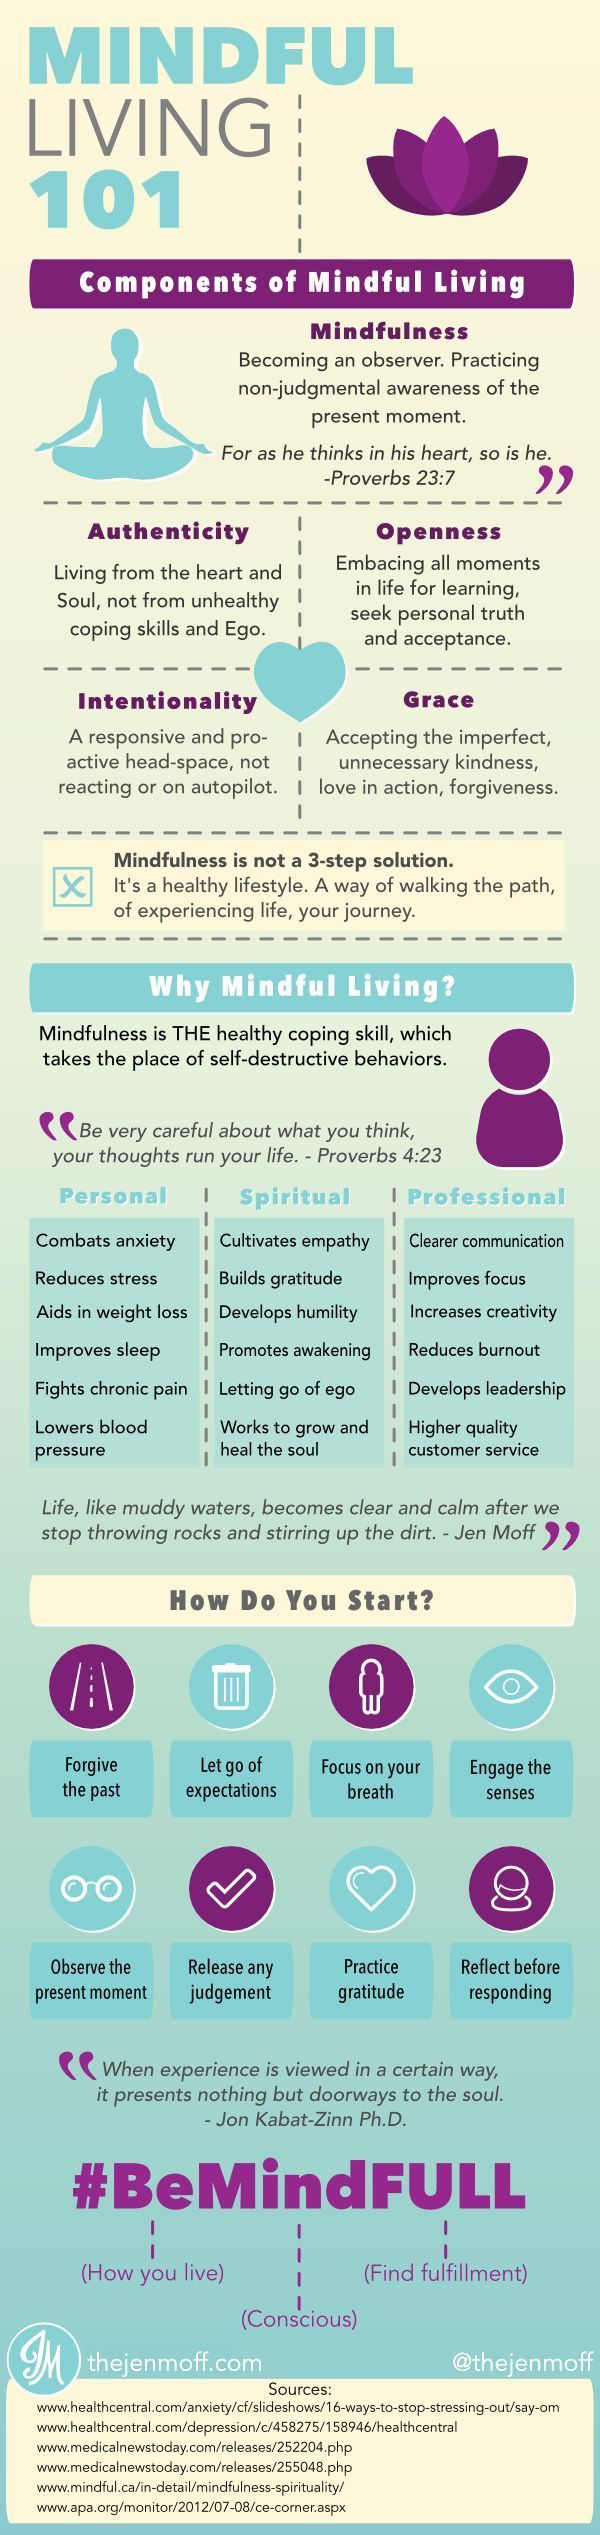 On #mindful living, #intention and #purpose www.pinterest.com...